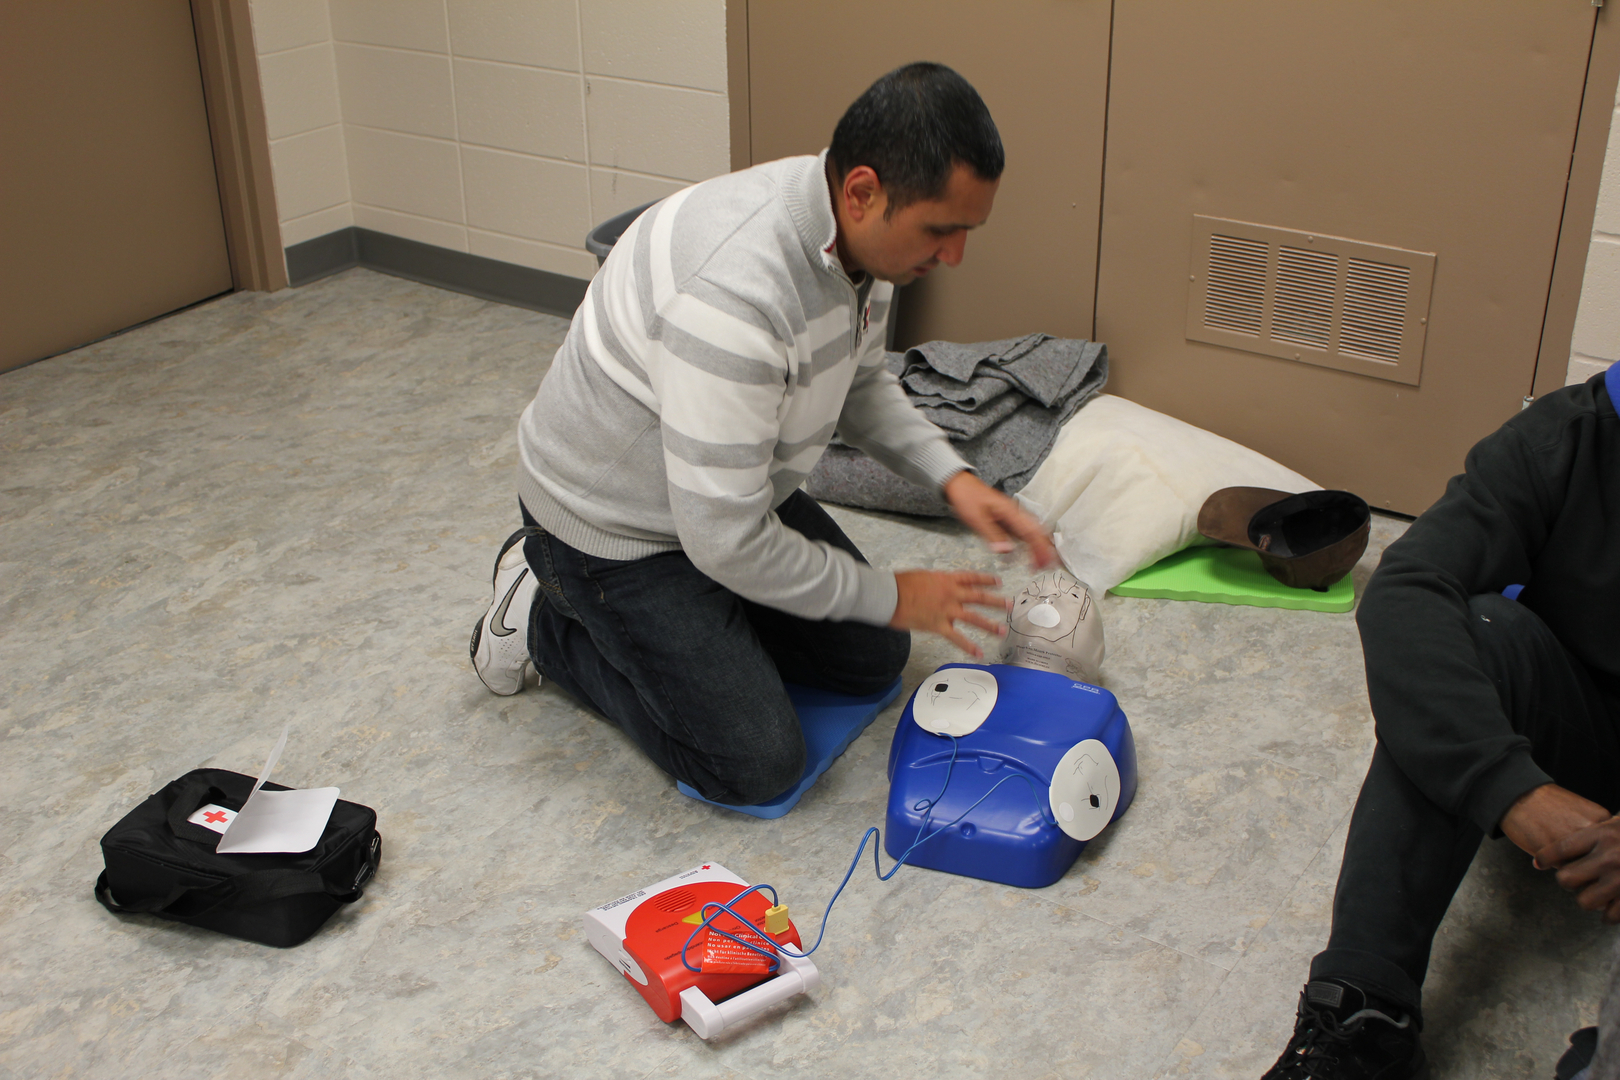 Impact first aid cpr first aid cpr training emergency training xflitez Gallery